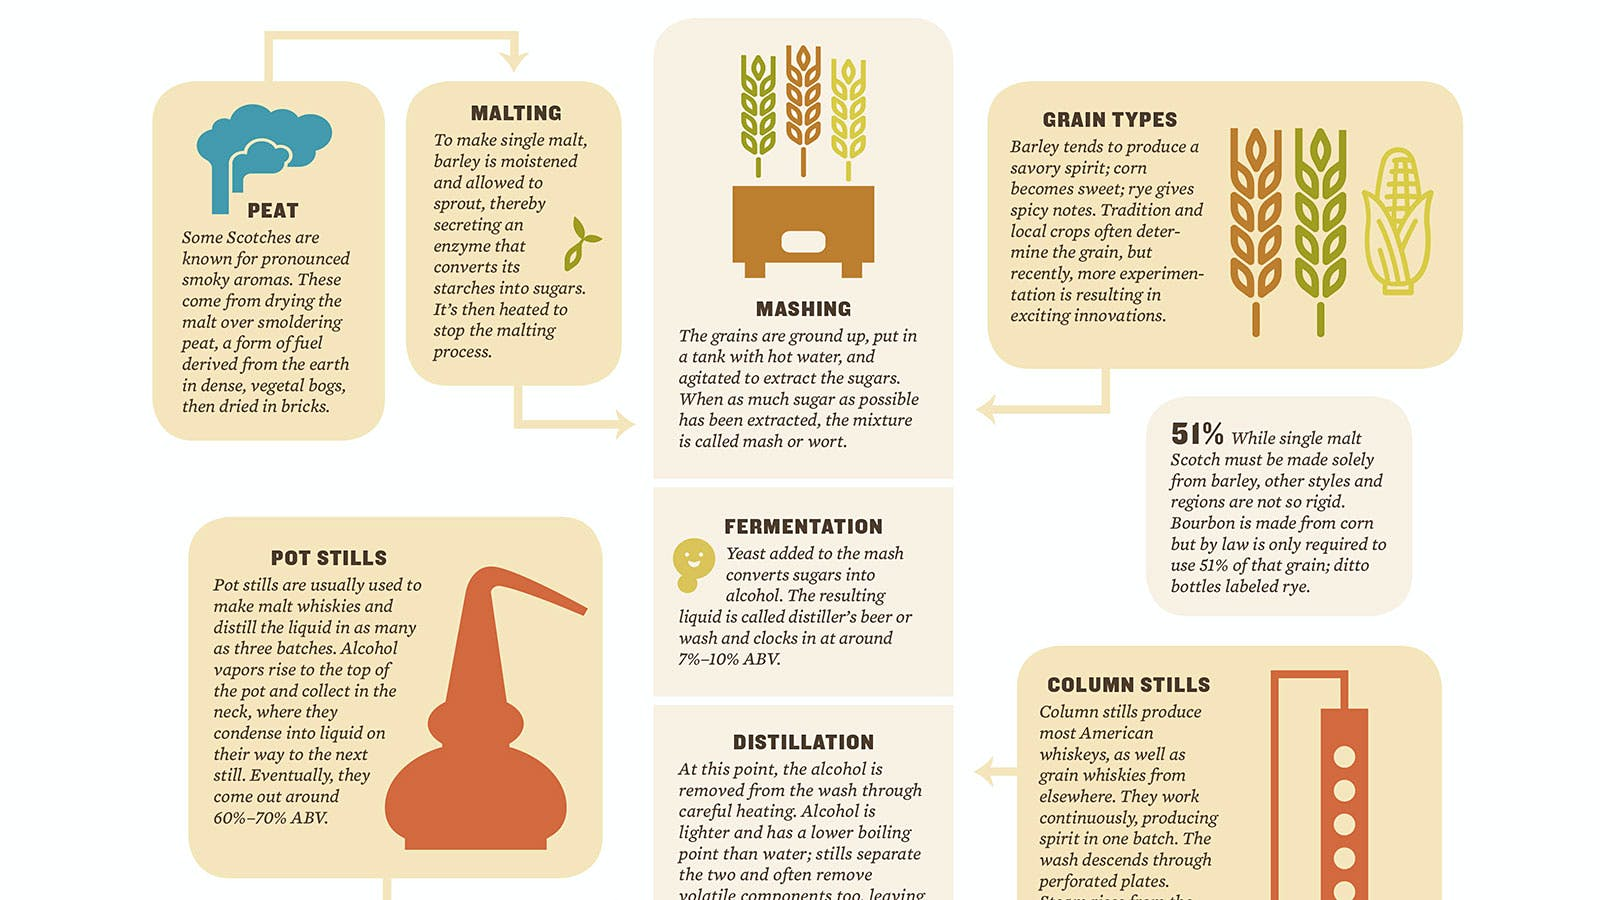 How Whisky Is Made